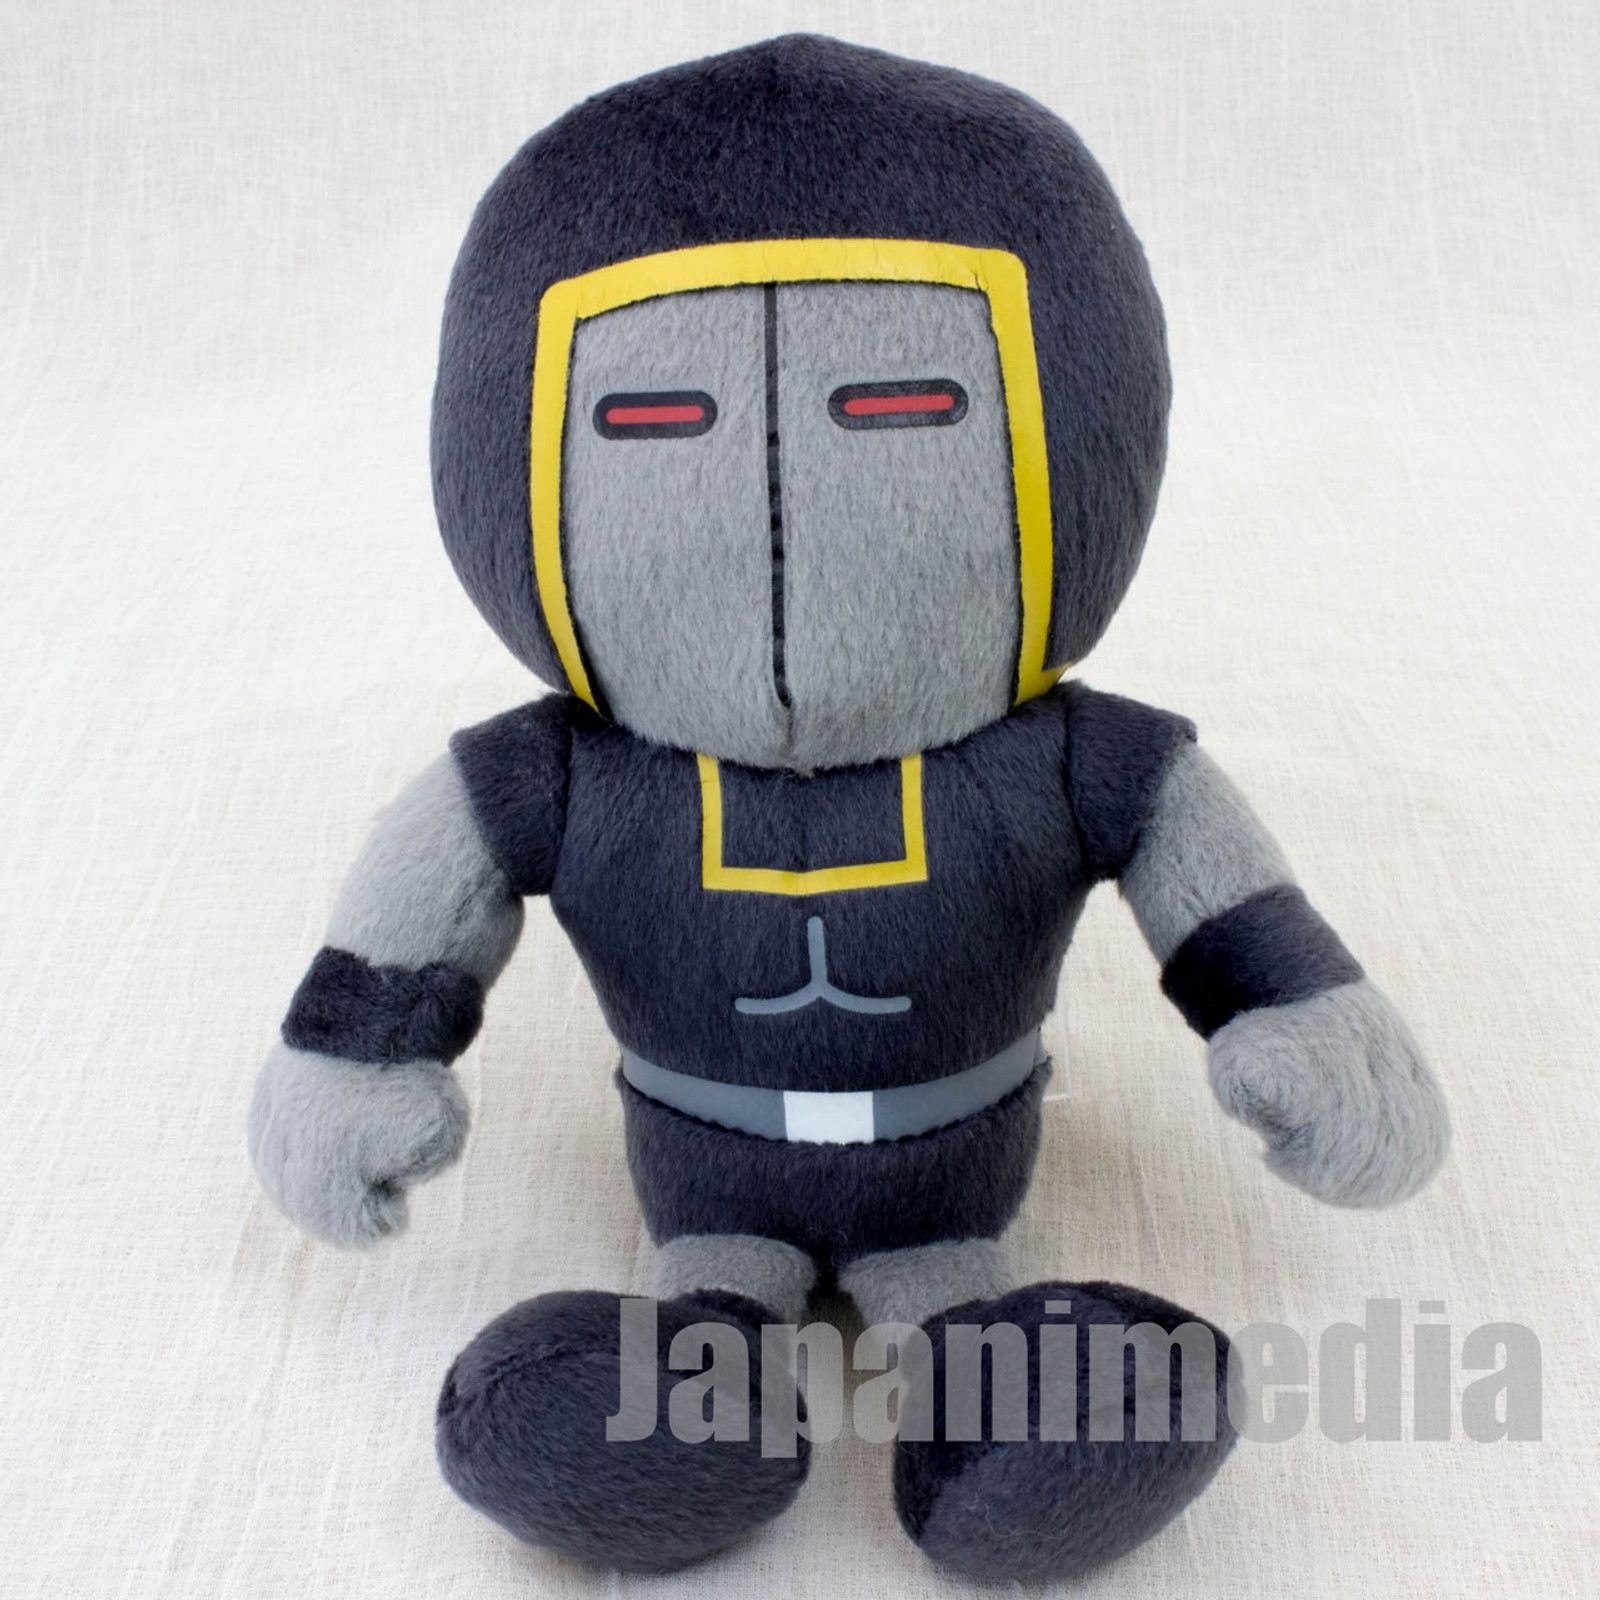 "Kinnikuman Wars Man Plush Doll 6"" Panson Works JAPAN ANIME ULTIMATE MUSCLE"